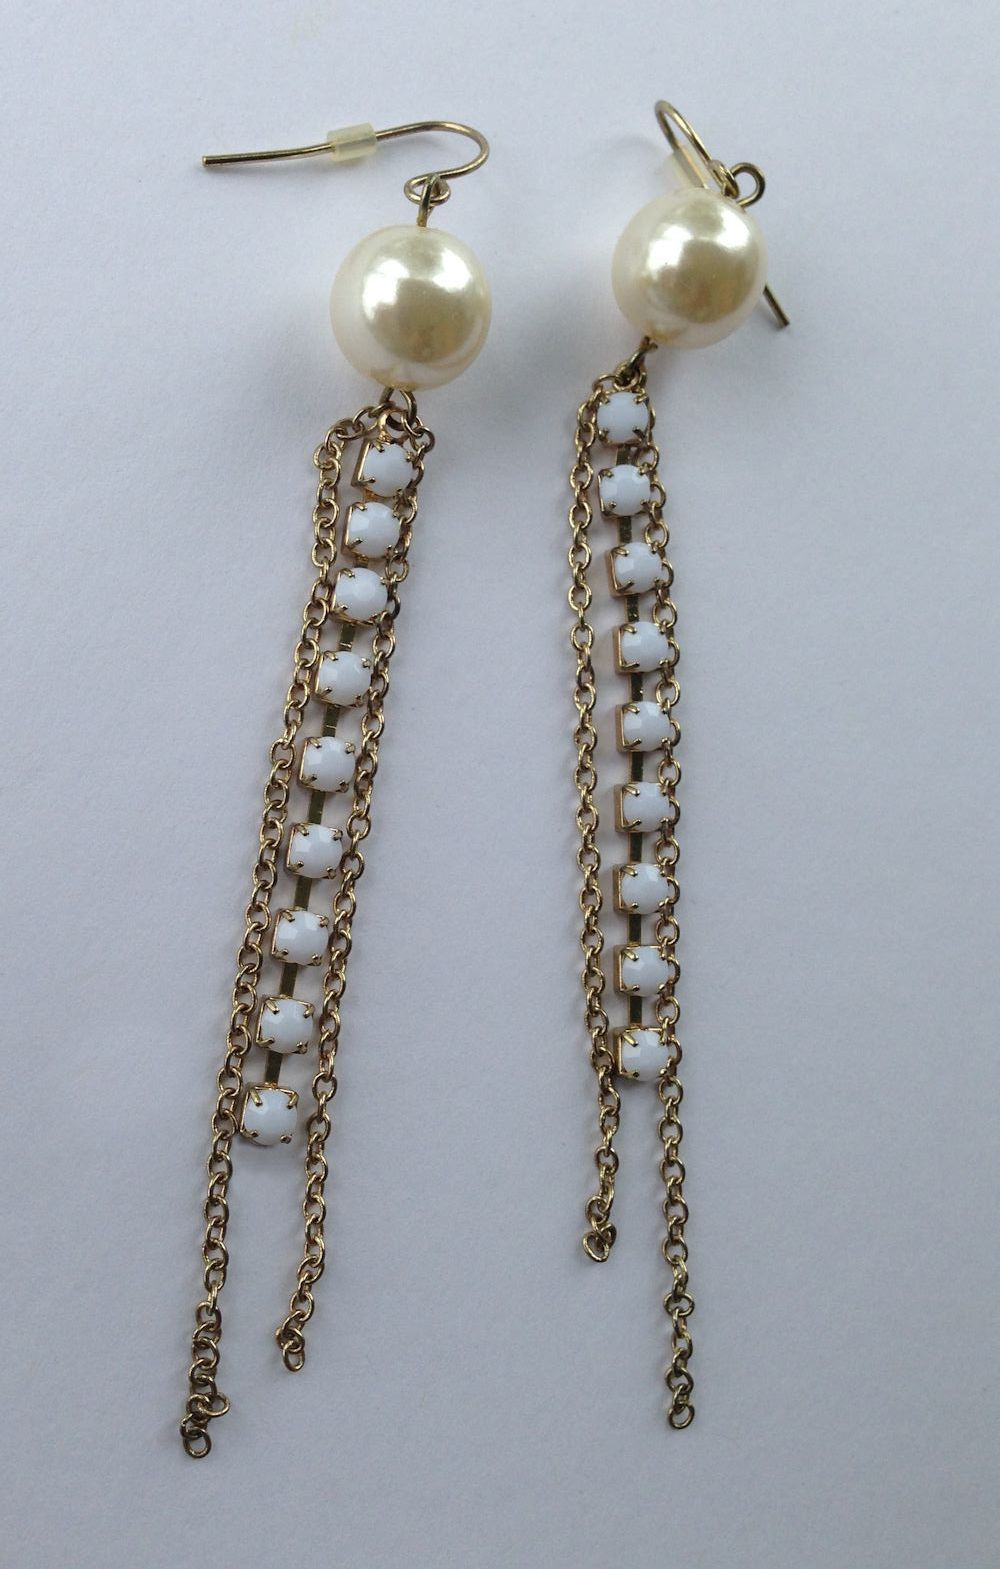 VTG Gold Chain Pearl Bead/White Opaque Rhinestones Long Dangle Pierced Earrings image 2